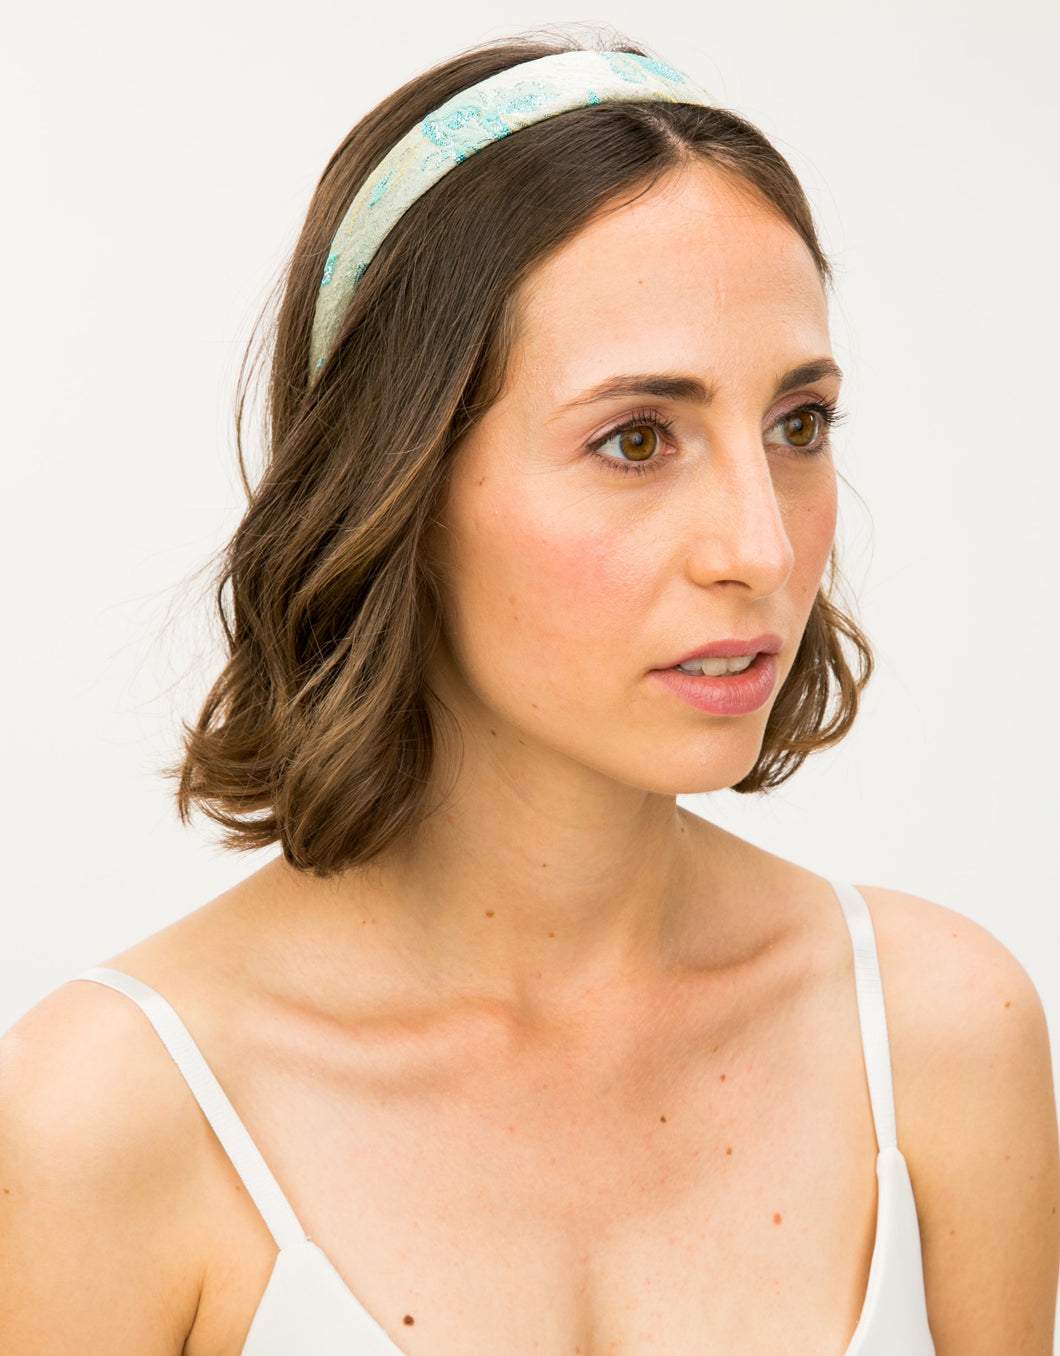 Model wears wide blue and gold brocade headband